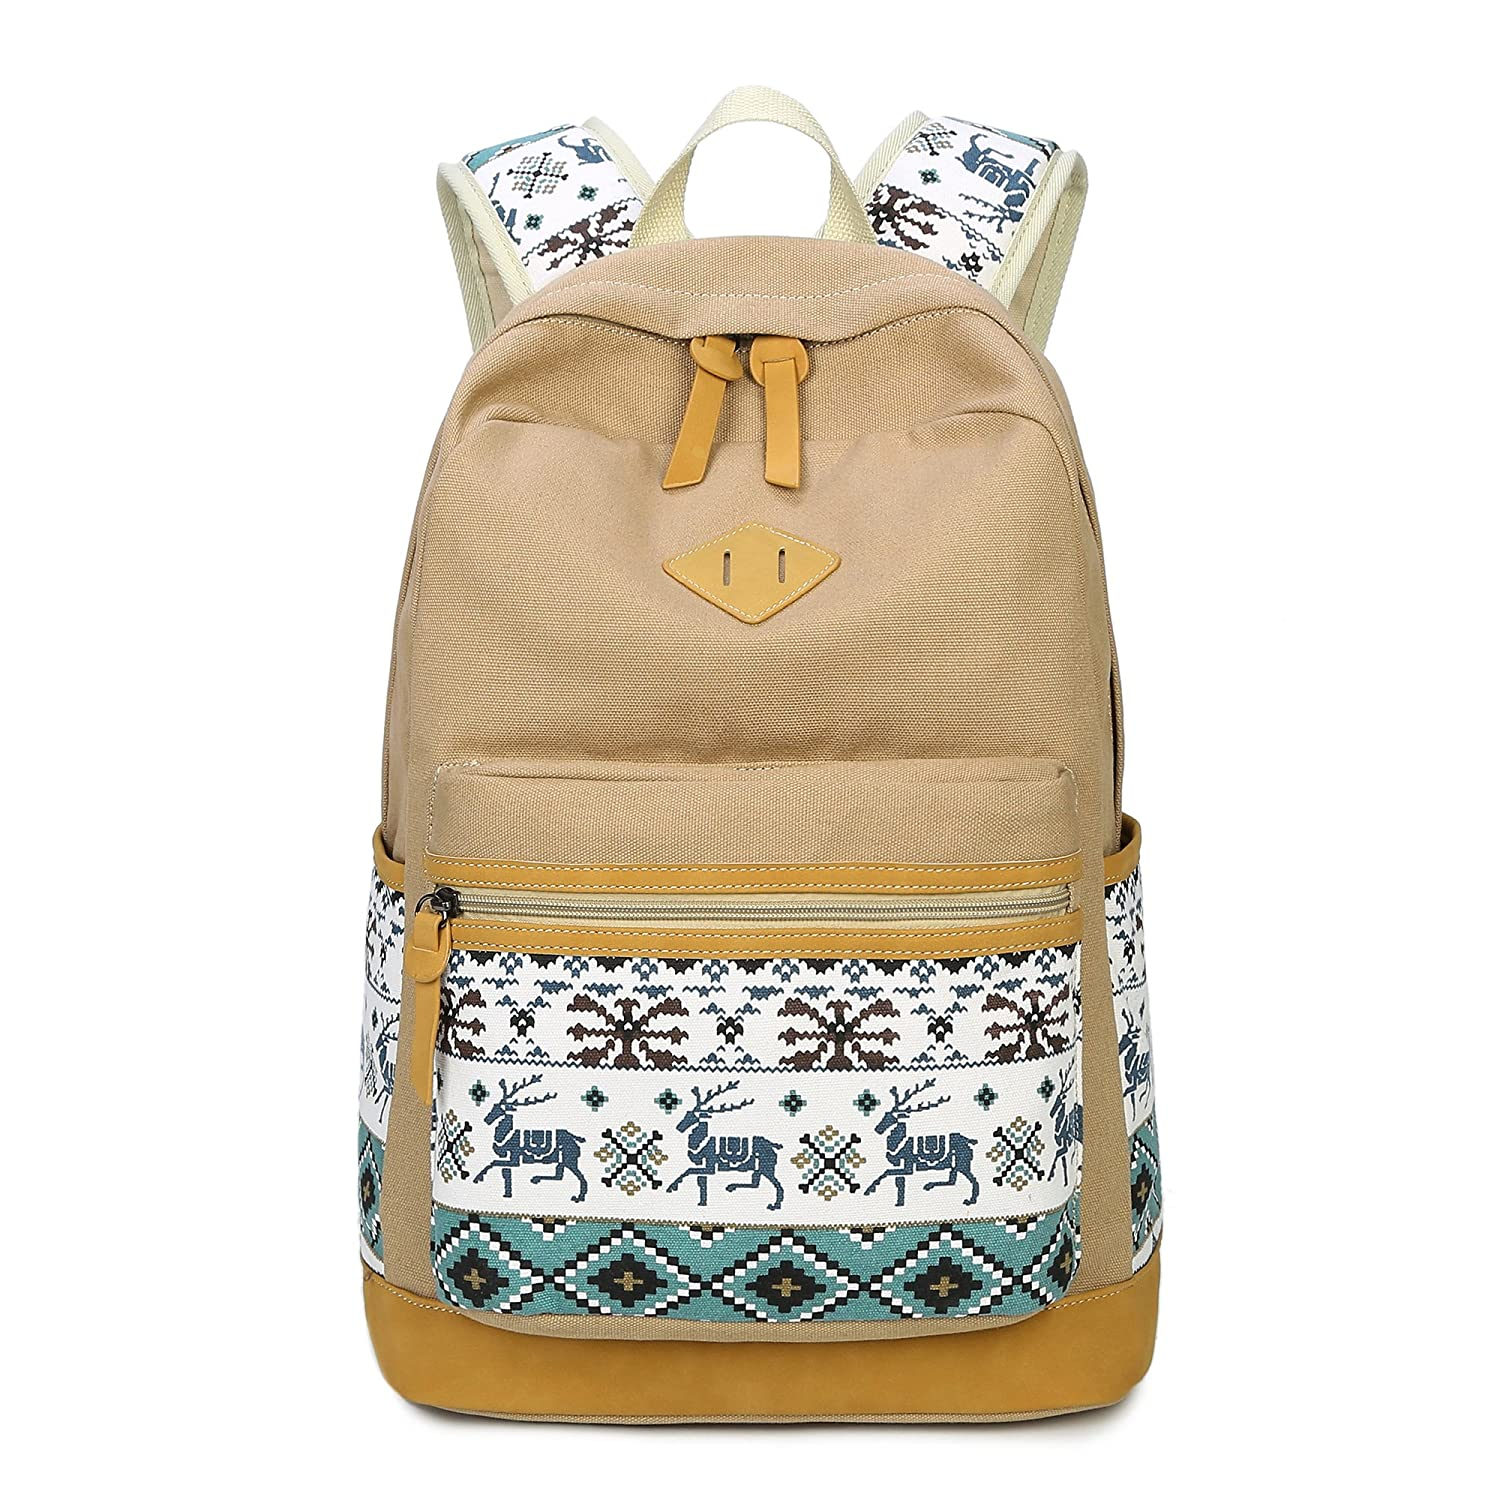 8818Beige SuStore School Backpack Canvas Bookbags Classic Schoolbag for Teens Girls High School (CVB1801Black)